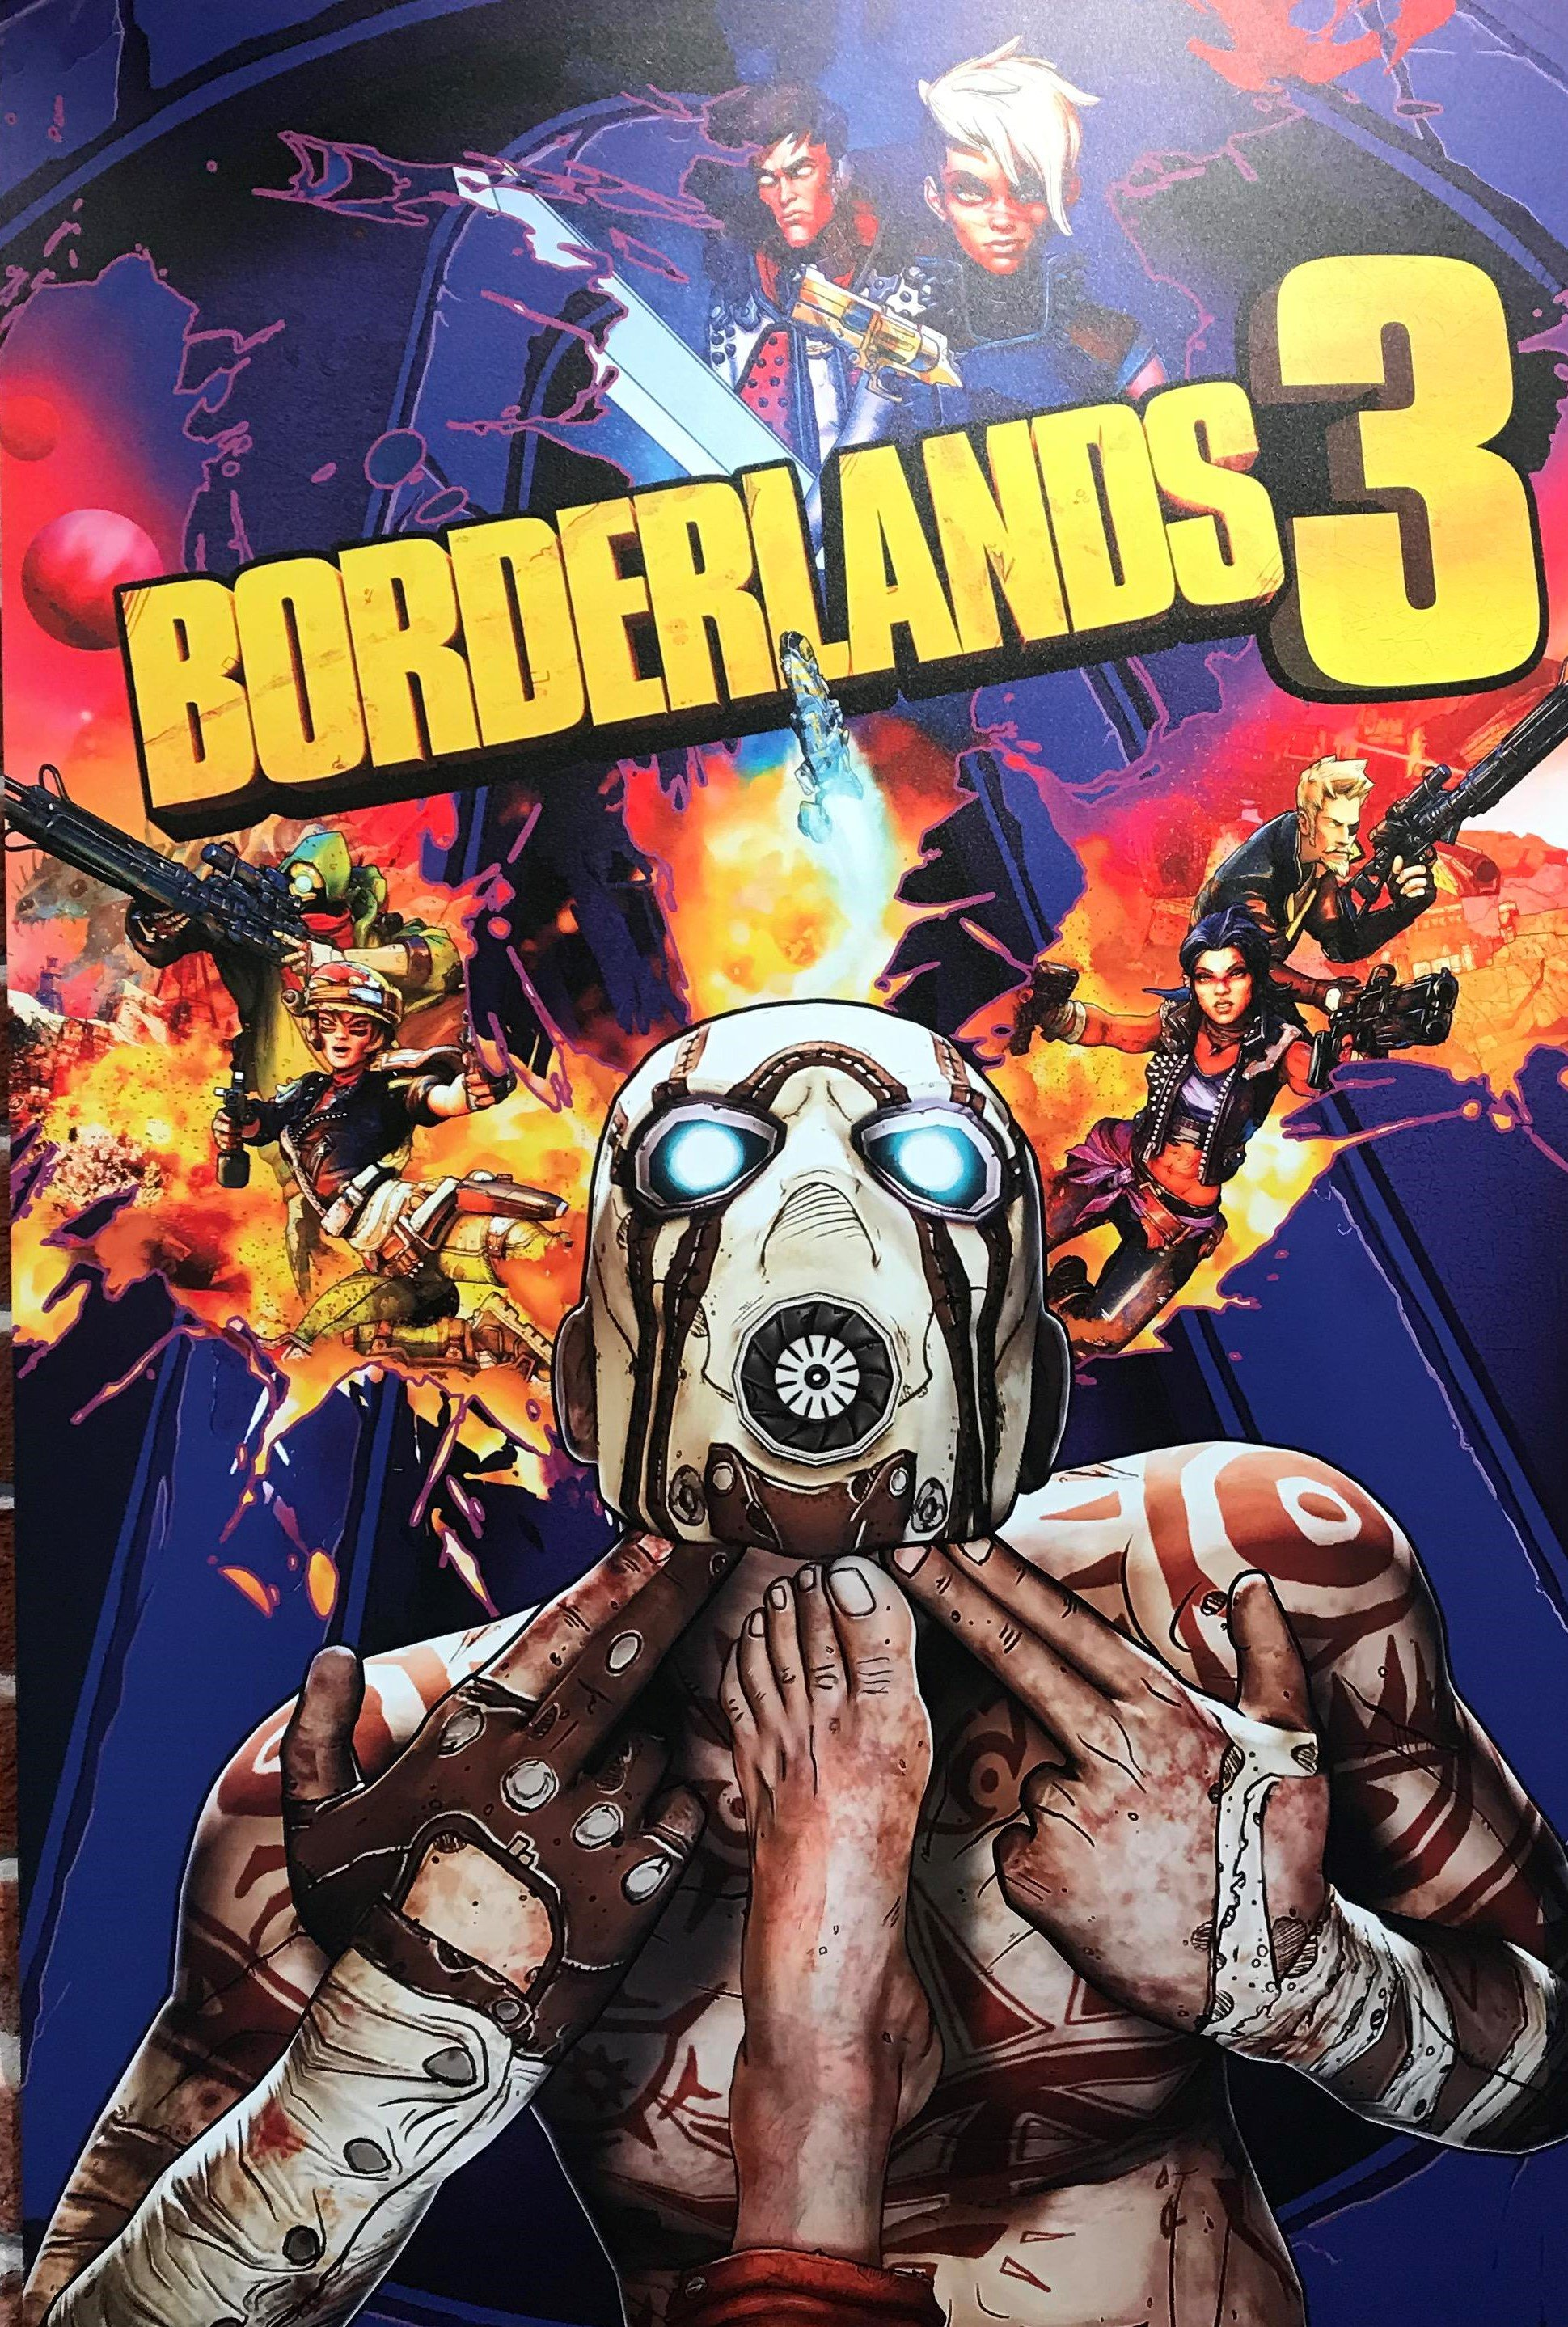 Borderlands 3 - Borderlands 3's Unused Box Art Puts Its Foot in Its Mouth ...